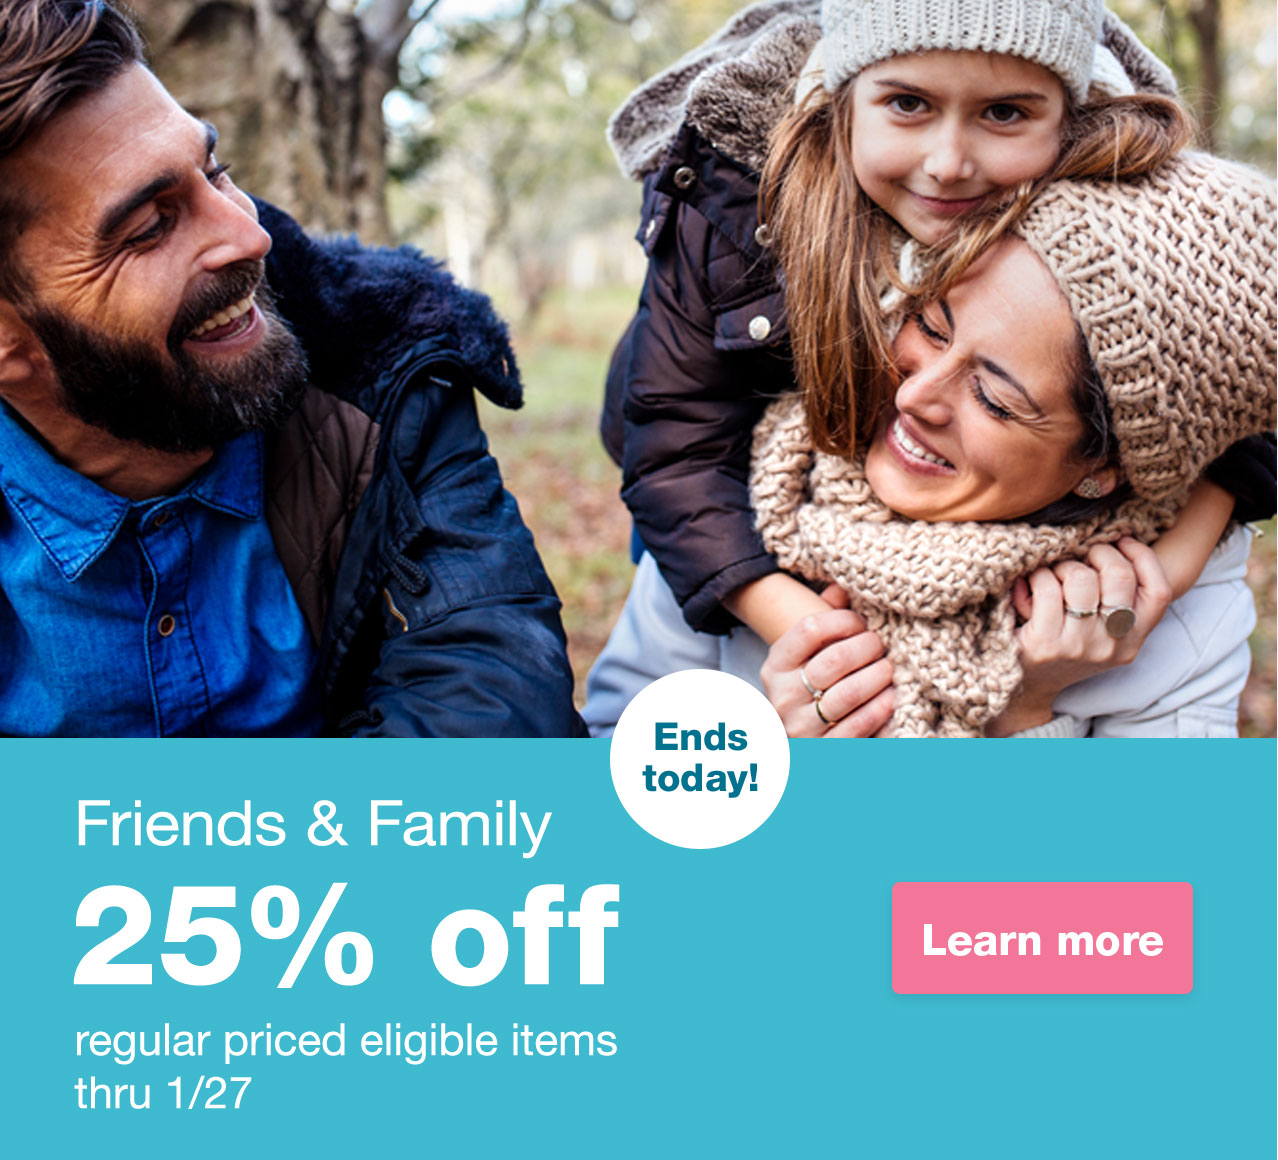 Friends & Family. 25% off one purchase thru 1/27. Get offer